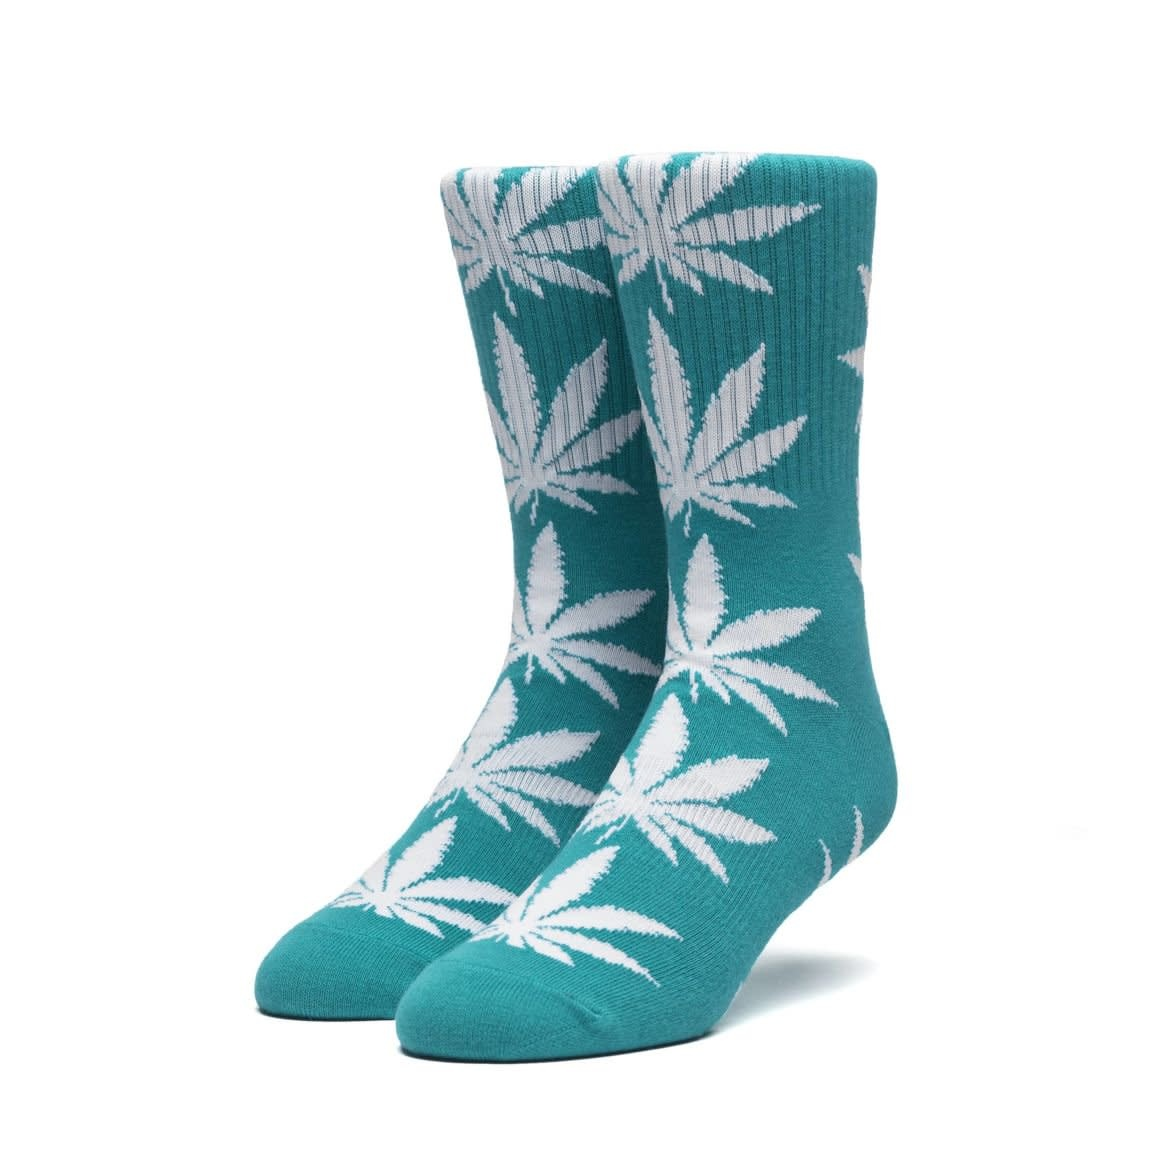 HUF Huf Plantlife Socks - Deep Jungle